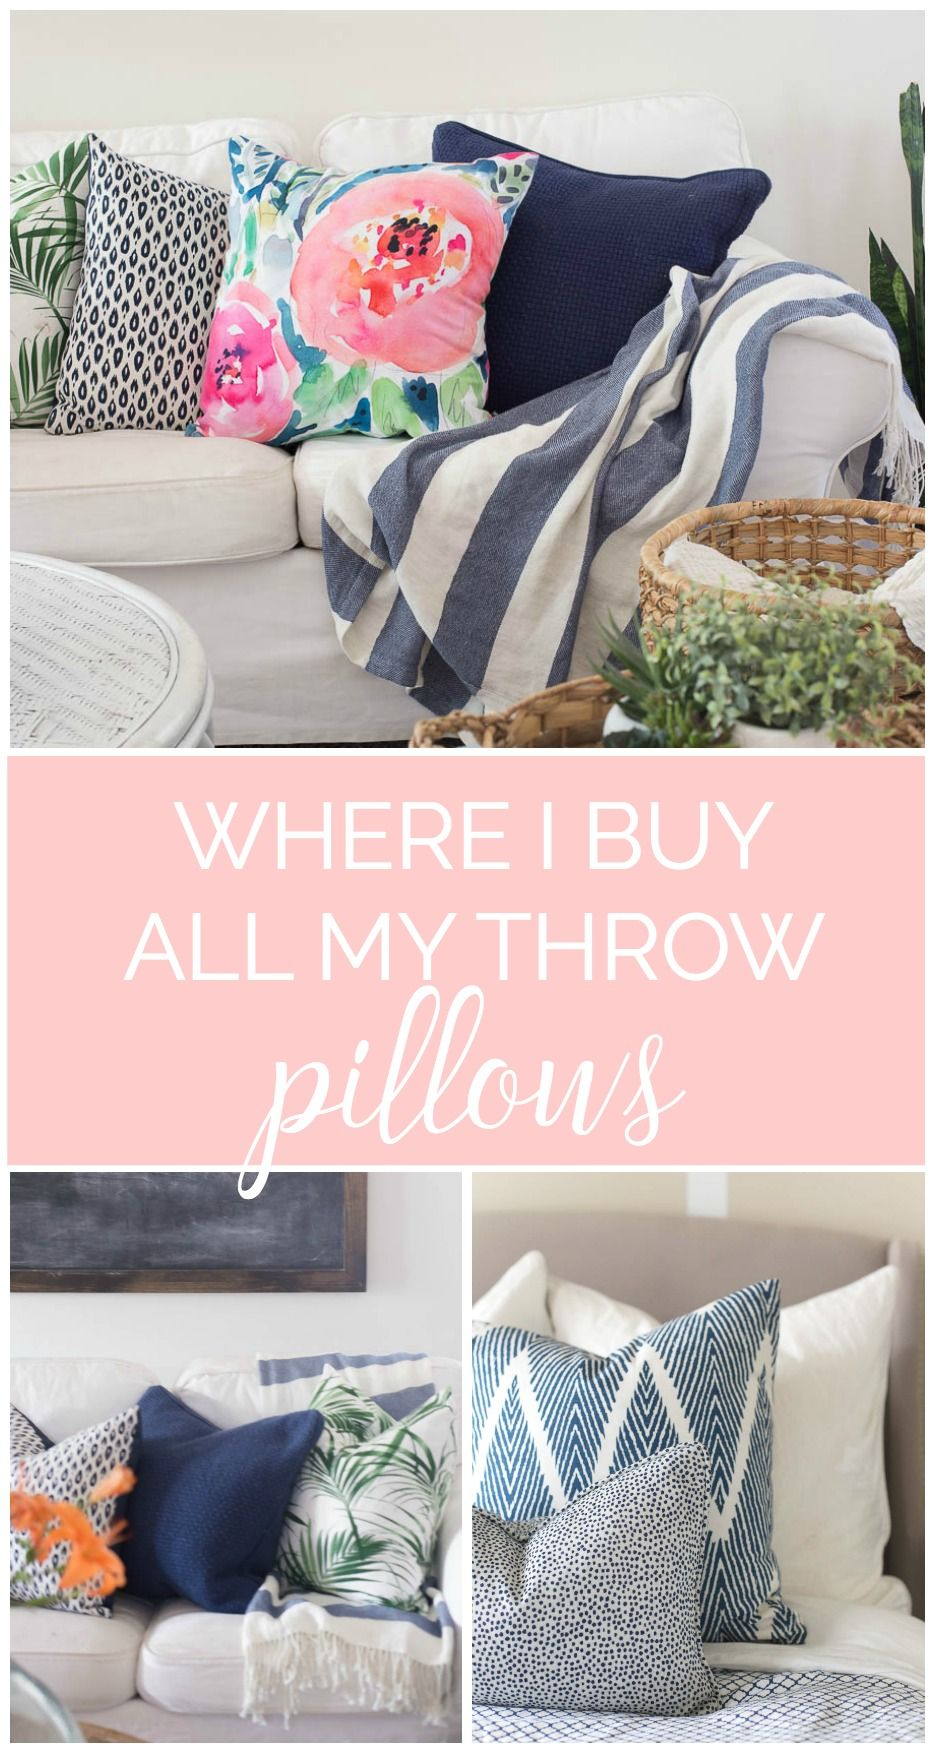 Where To Throw Pillows Wow This Reveals All Of Her Pillow Sources So Many Gorgeous One For Super She Found Just 6